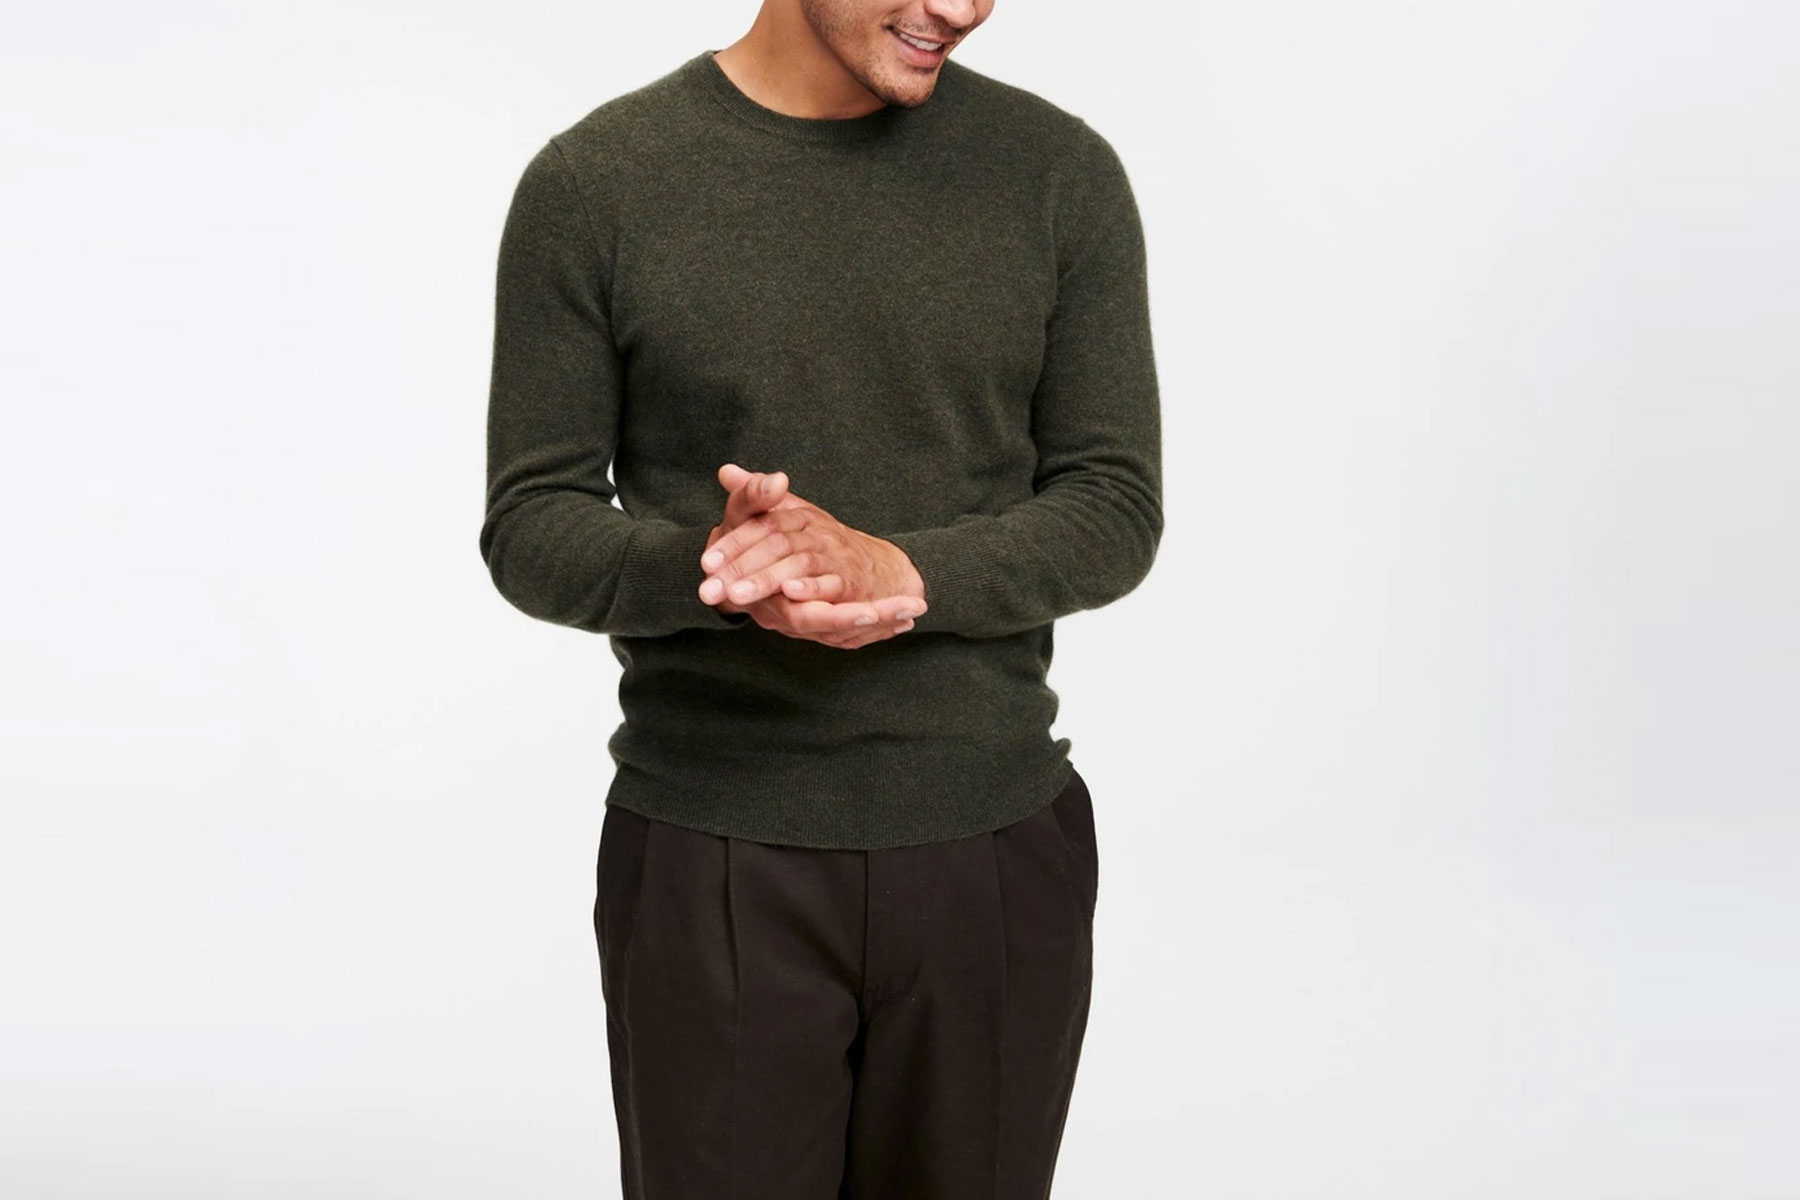 Man wearing olive green sweater